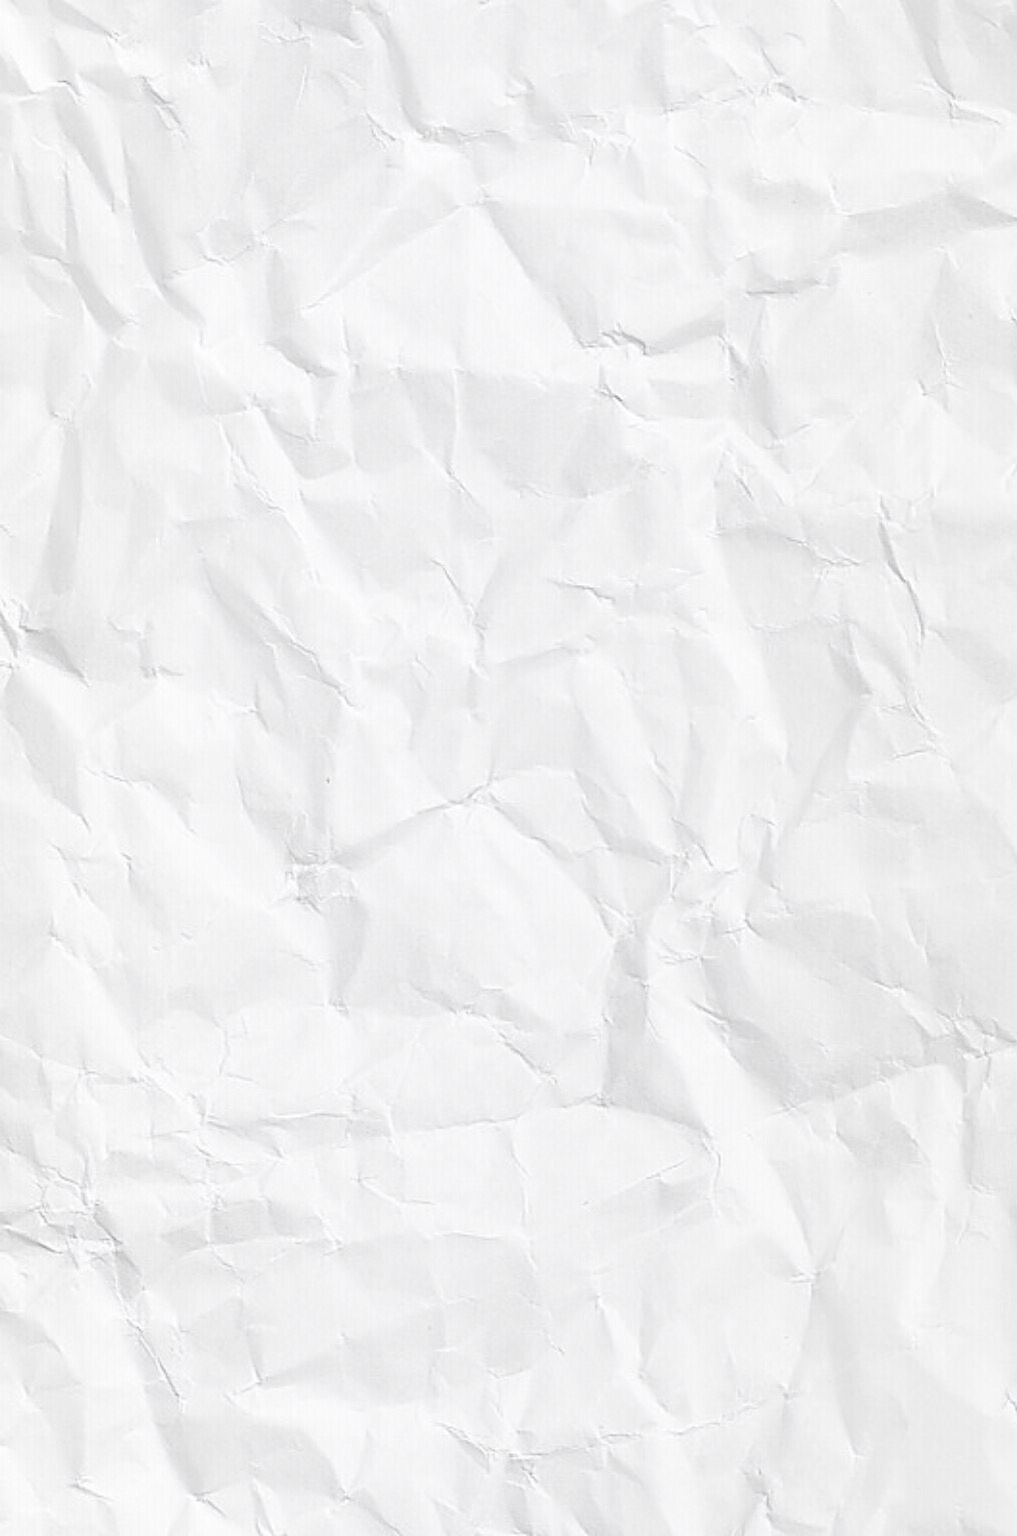 Mimadeo wrinkled paper wallpaper White background